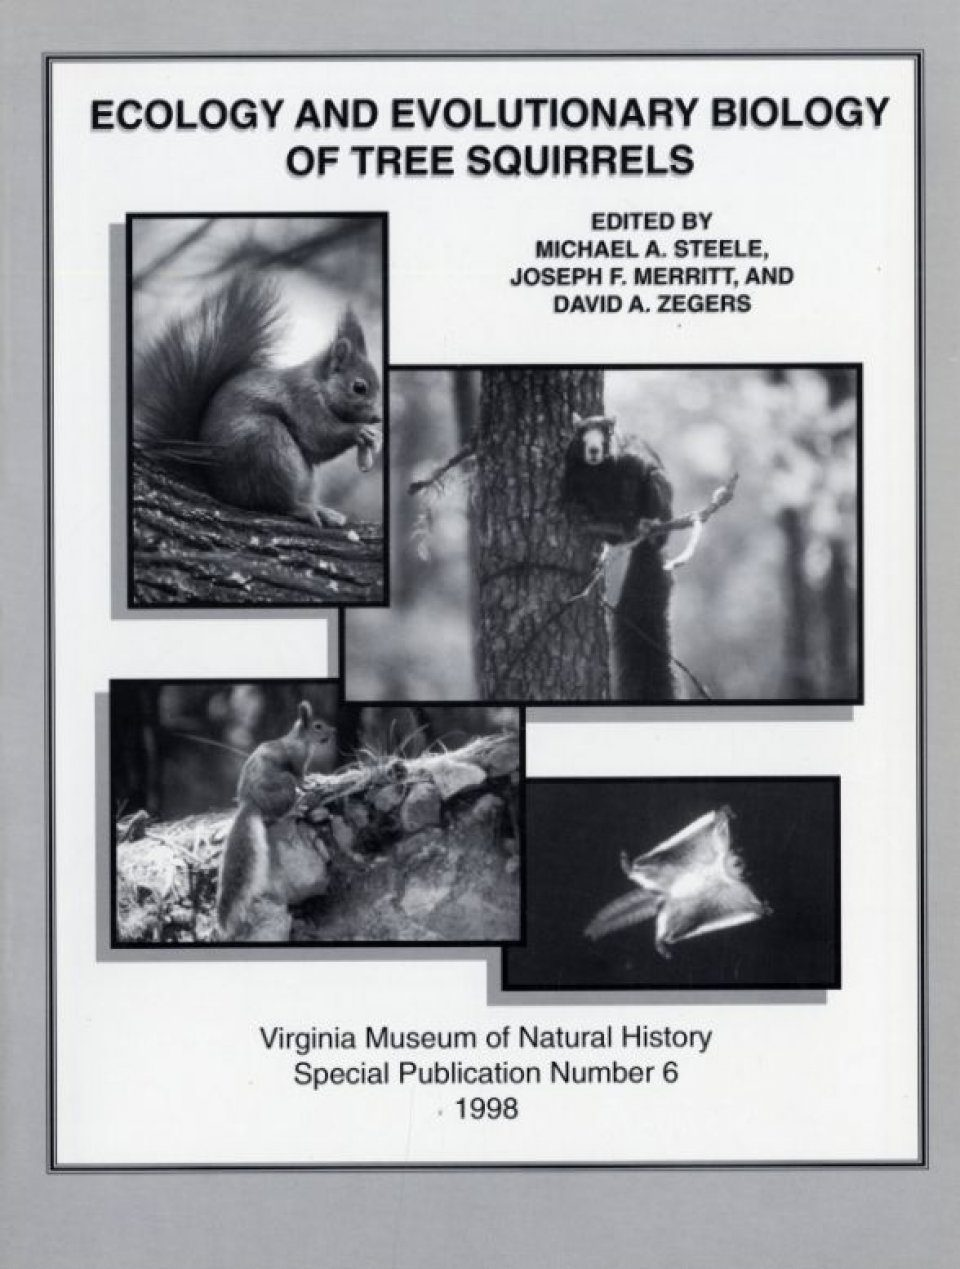 Ecology and Evolutionary Biology of Tree Squirrels